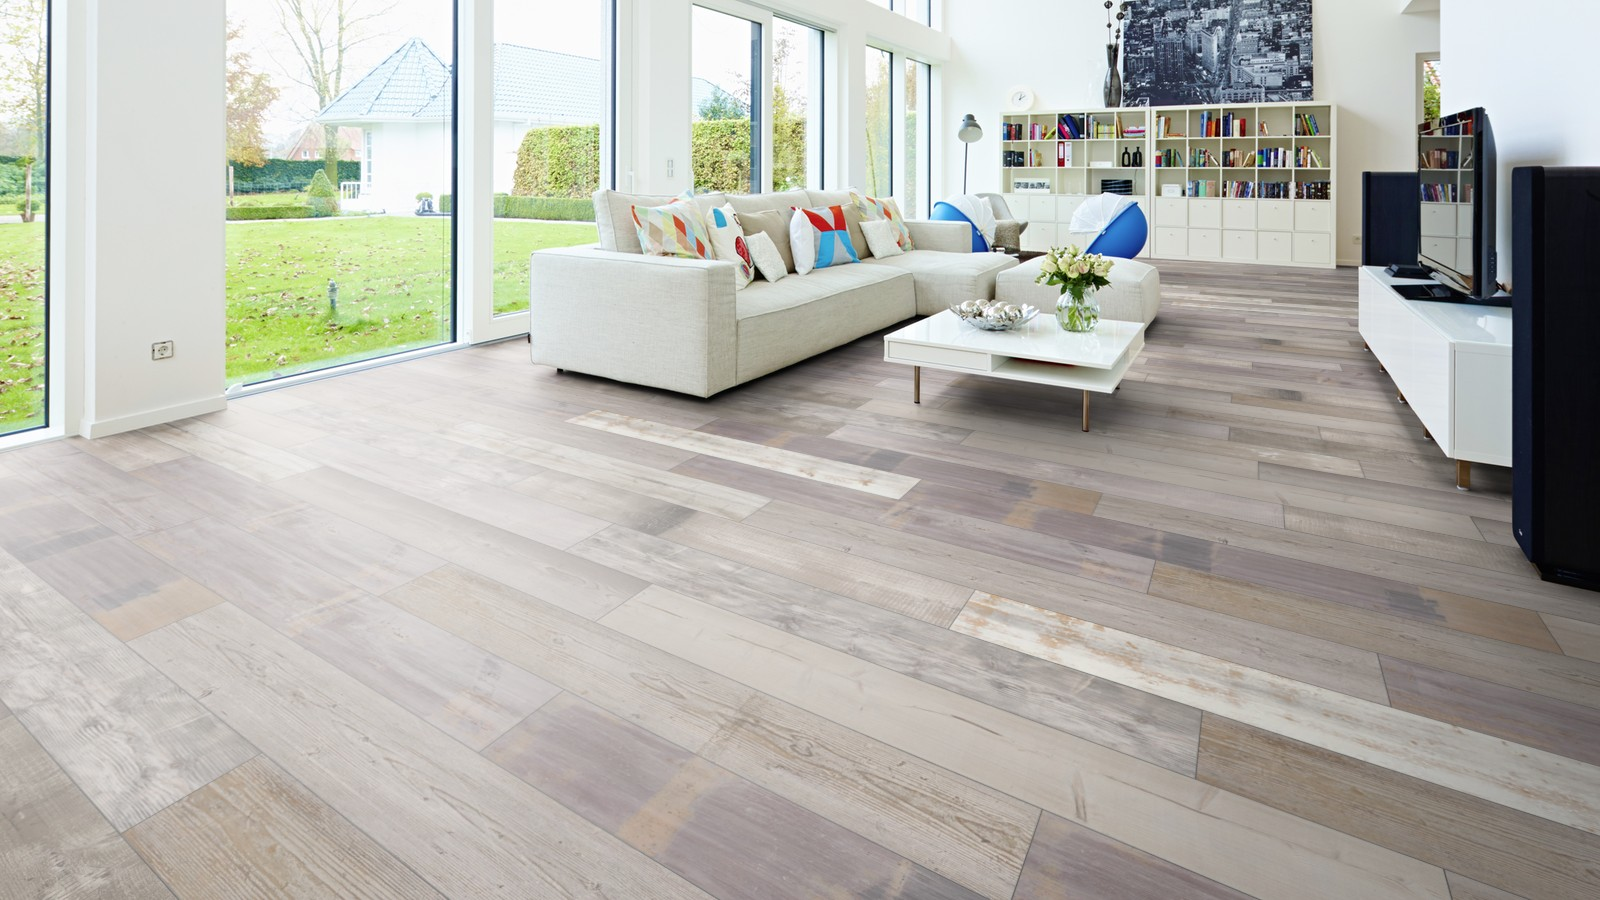 Flooring solutions for Flooring solutions